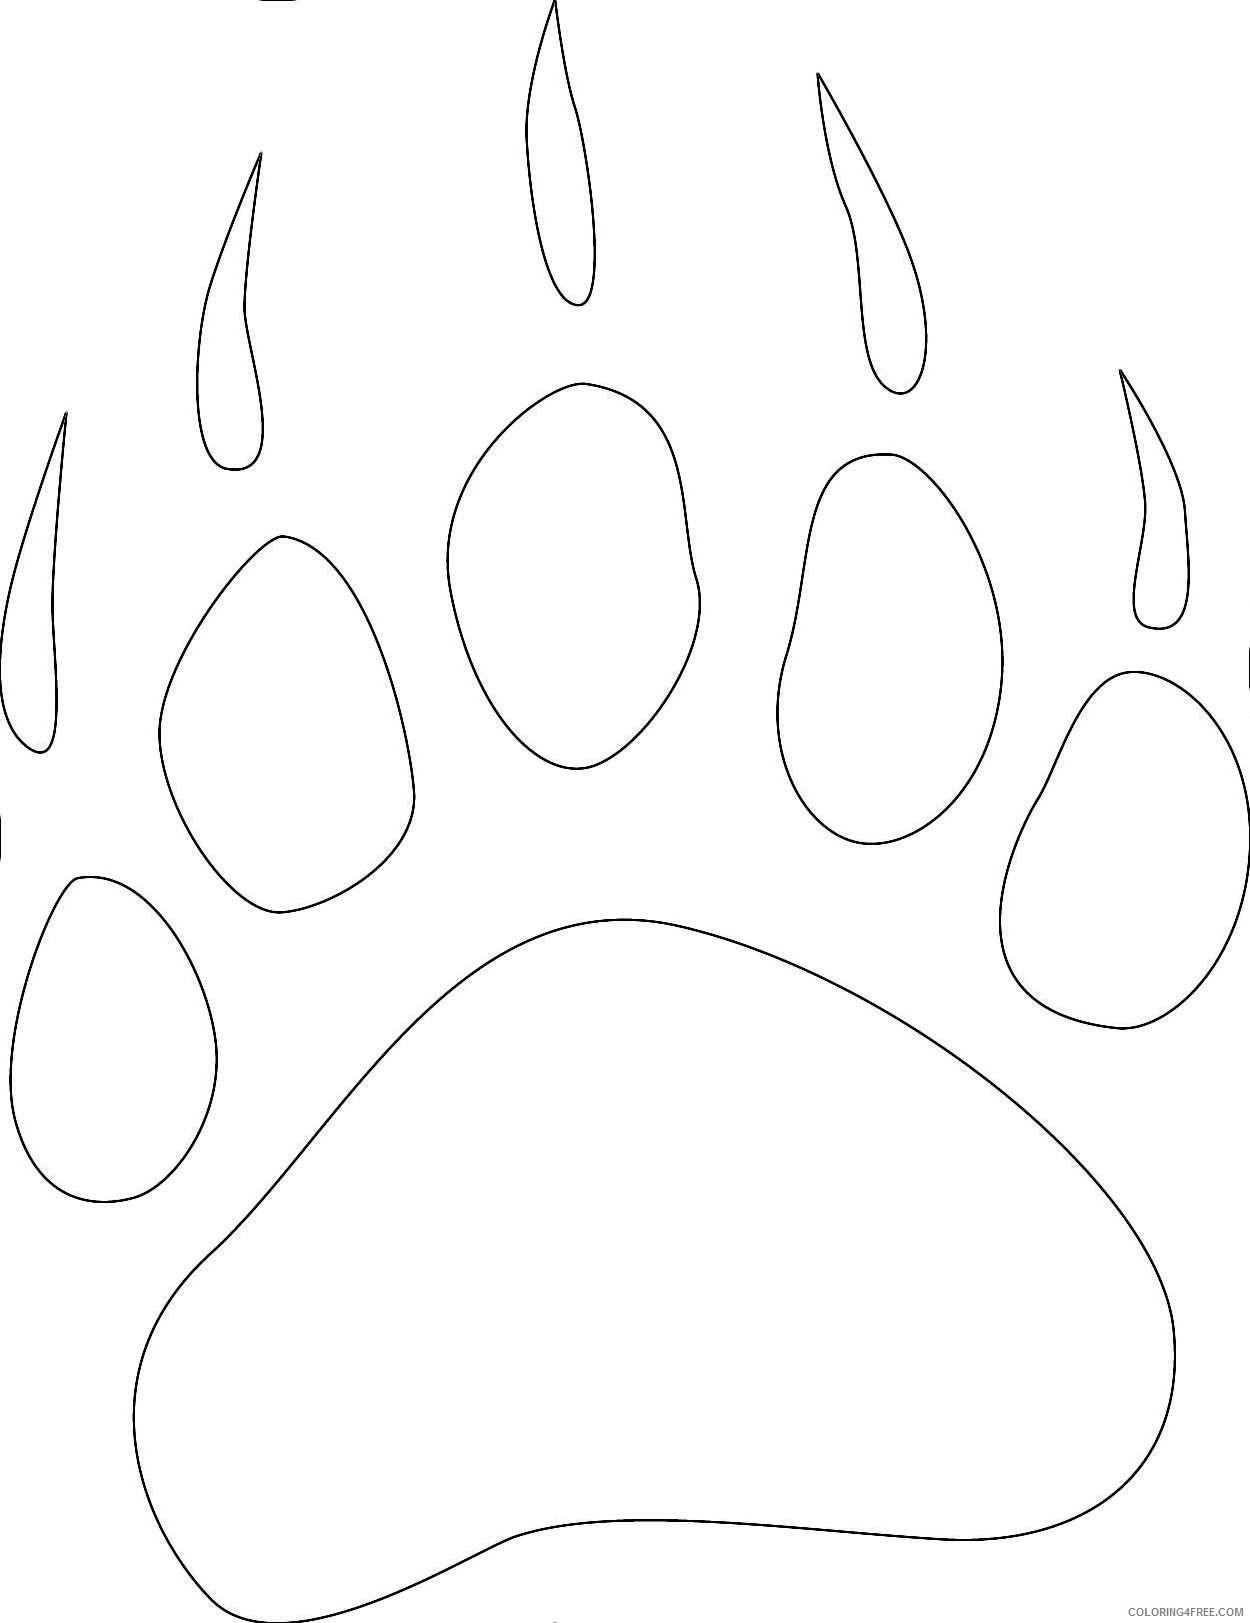 paw prints coloring pages paw print coloring page pages astounding free patrol pages paw prints coloring